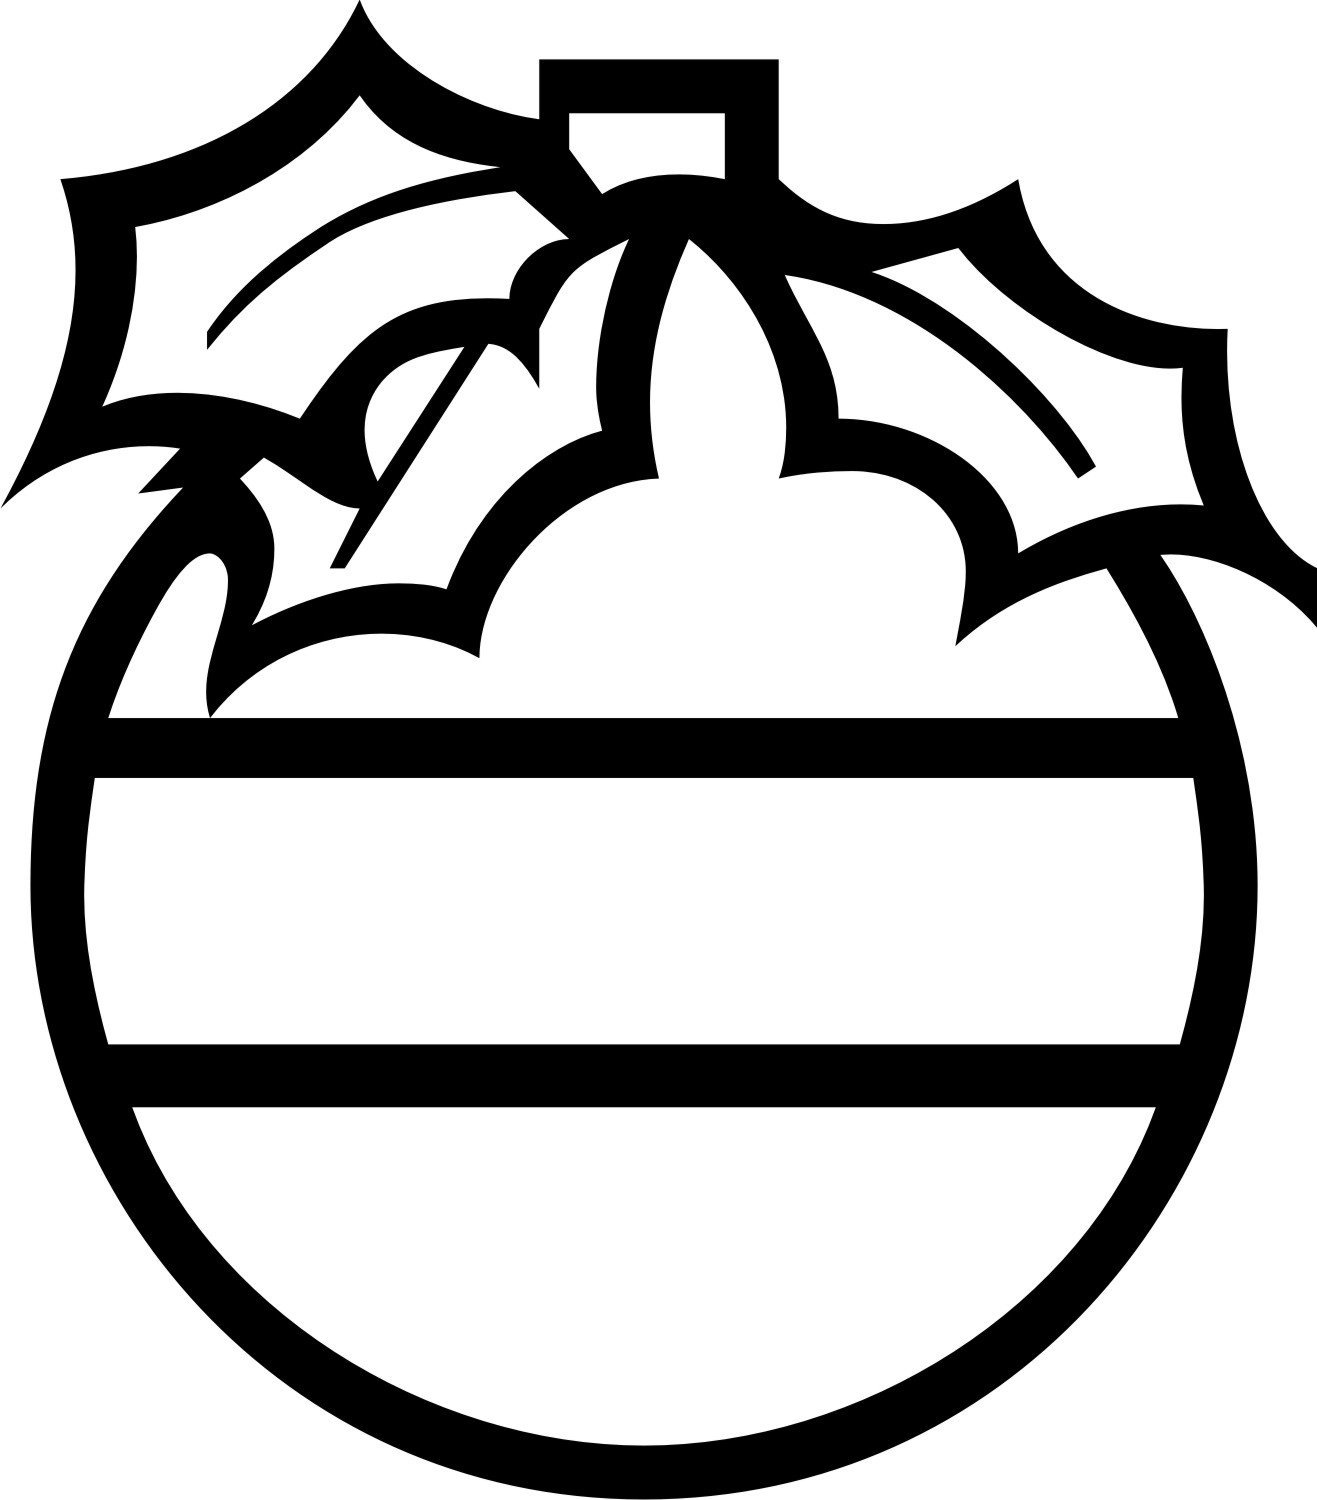 Christmas black and white ornaments clipart png royalty free Christmas ornaments clipart black and white 6 » Clipart Portal png royalty free